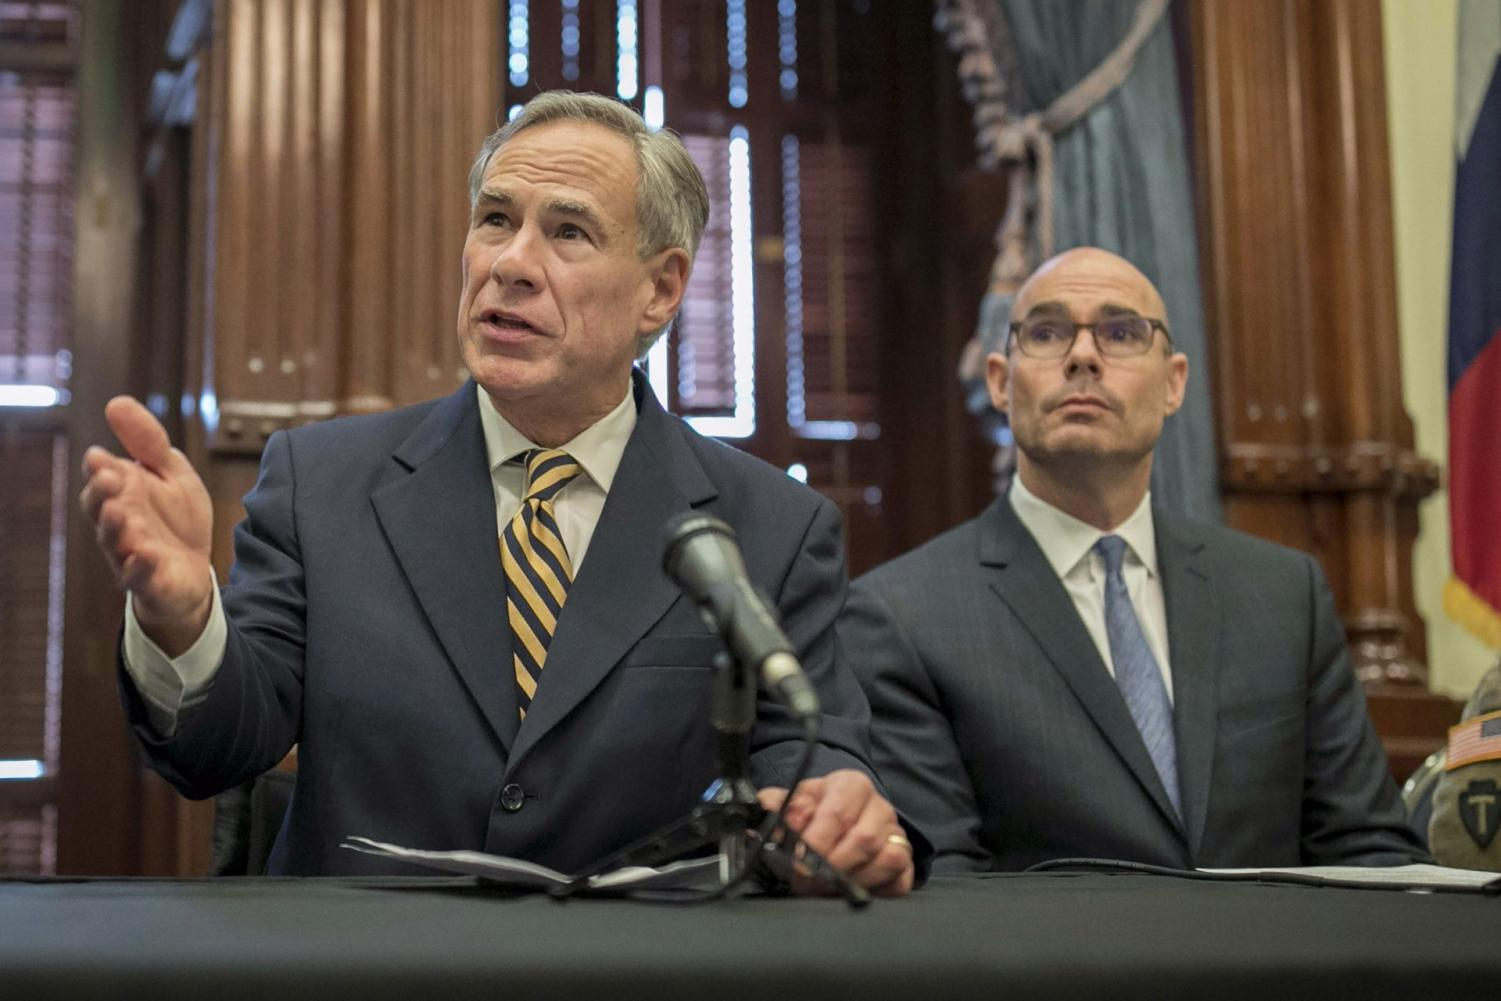 In this June 21, 2019 file photo, Gov. Greg Abbott, left, speaks at a news conference at the Capitol, in Austin, Texas. Abbott says the state will reject the re-settlement of new refugees, becoming the first state known to do so under a recent Trump administration order.